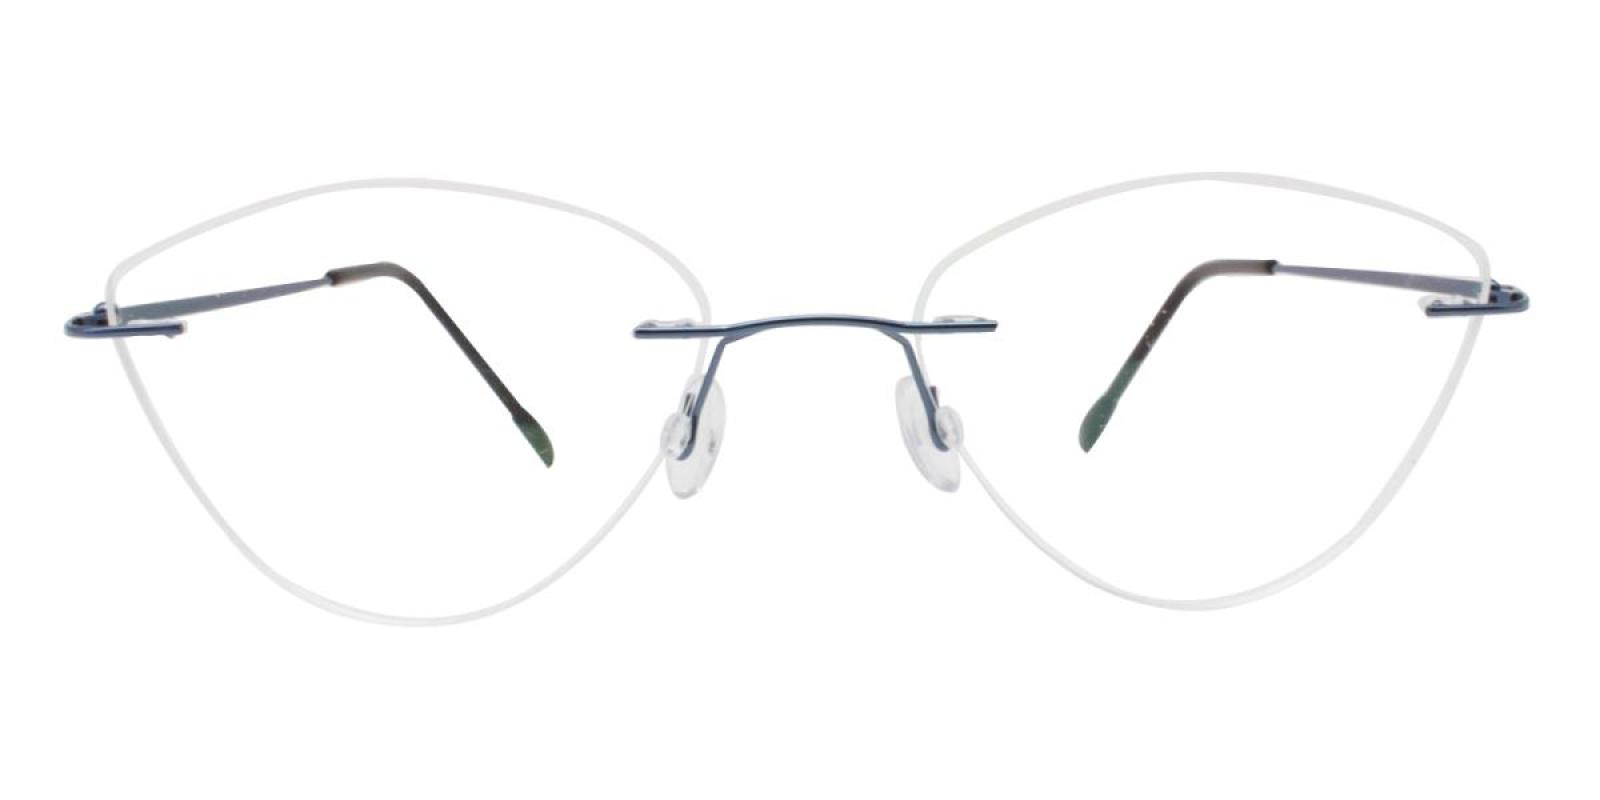 Huram-Blue-Cat / Varieties-Metal-Eyeglasses-additional2